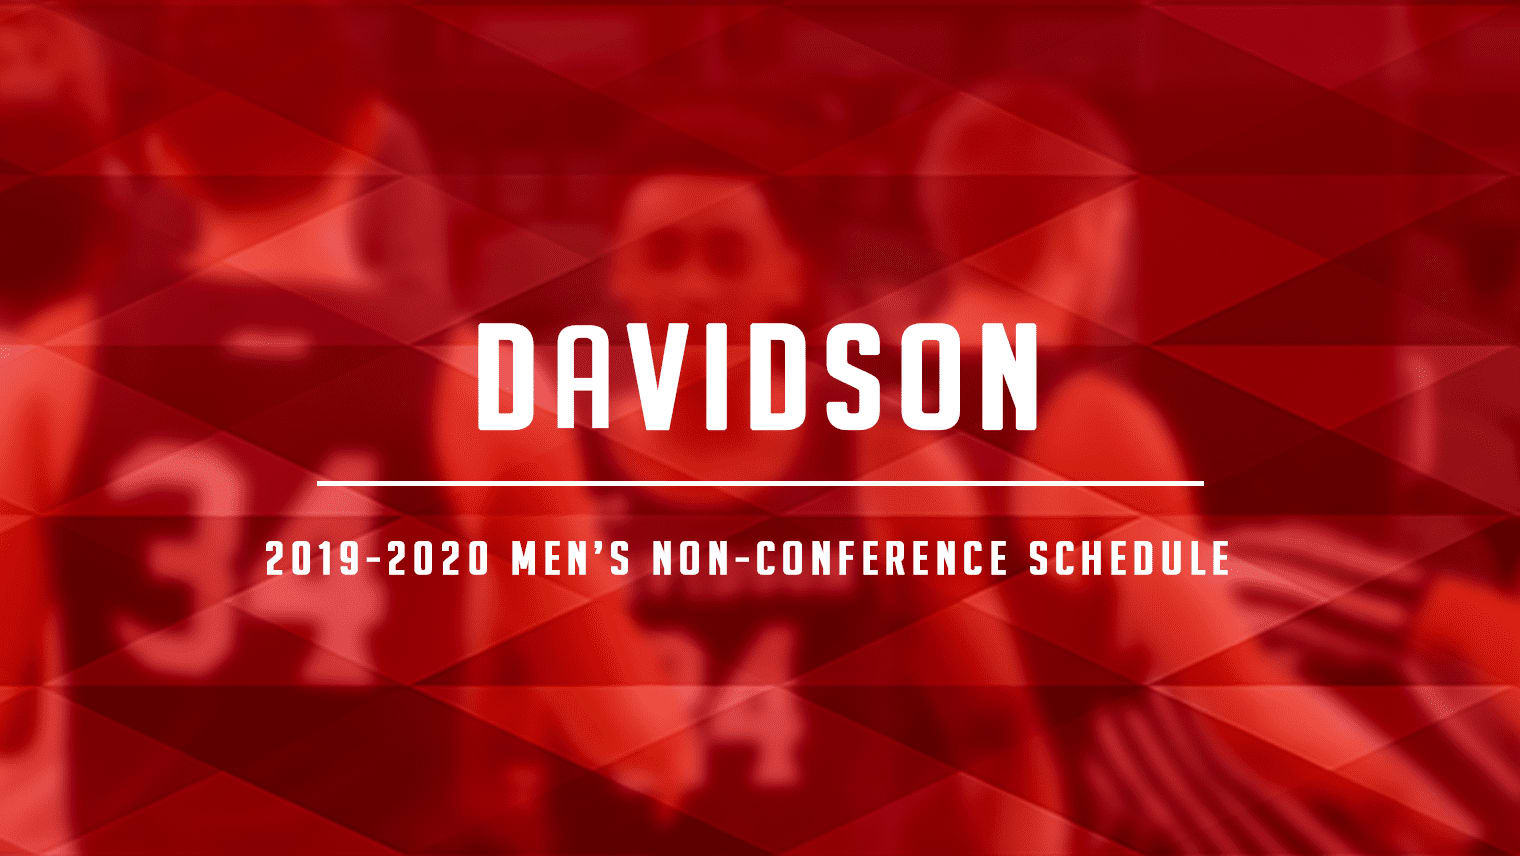 Davidson has a very tough non-conference schedule ahead of it, including the Orlando Invitational, a date with Auburn and much more.